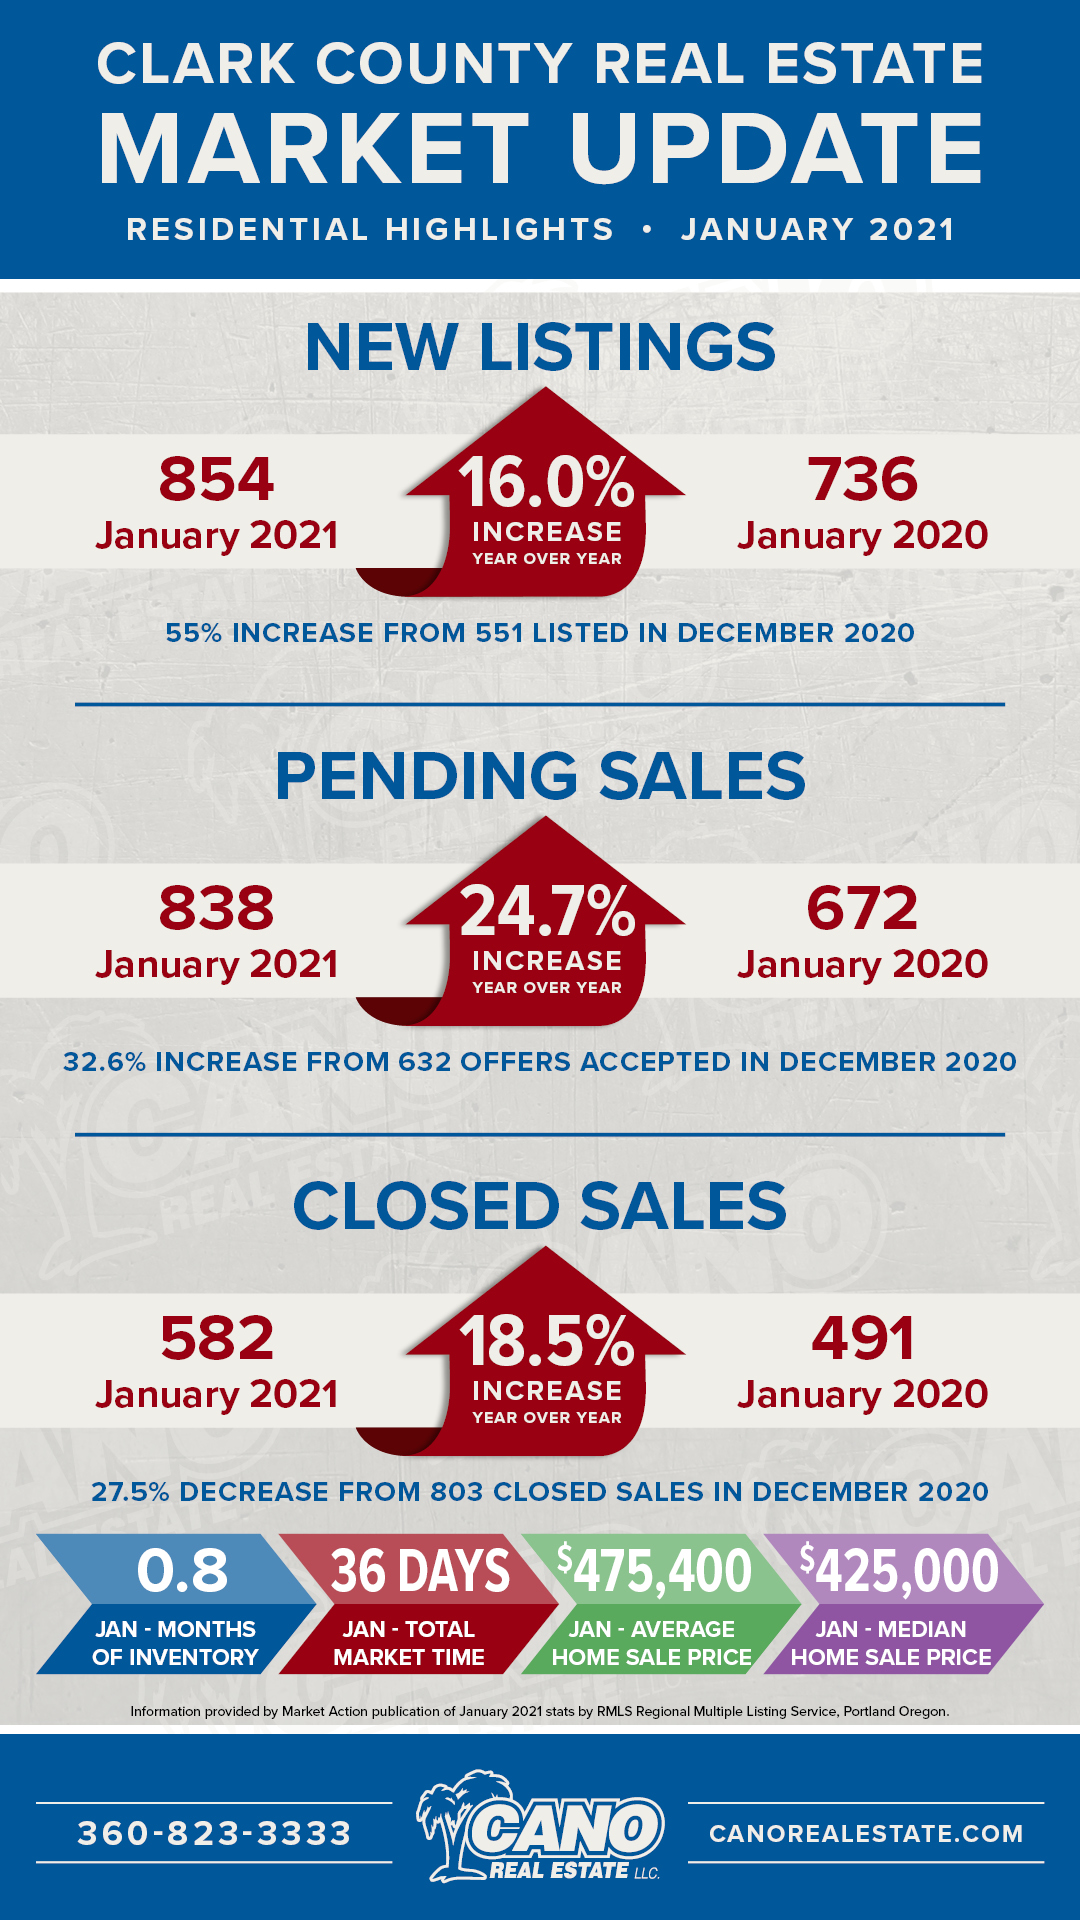 Clark County Real Estate Market Update for January 2021